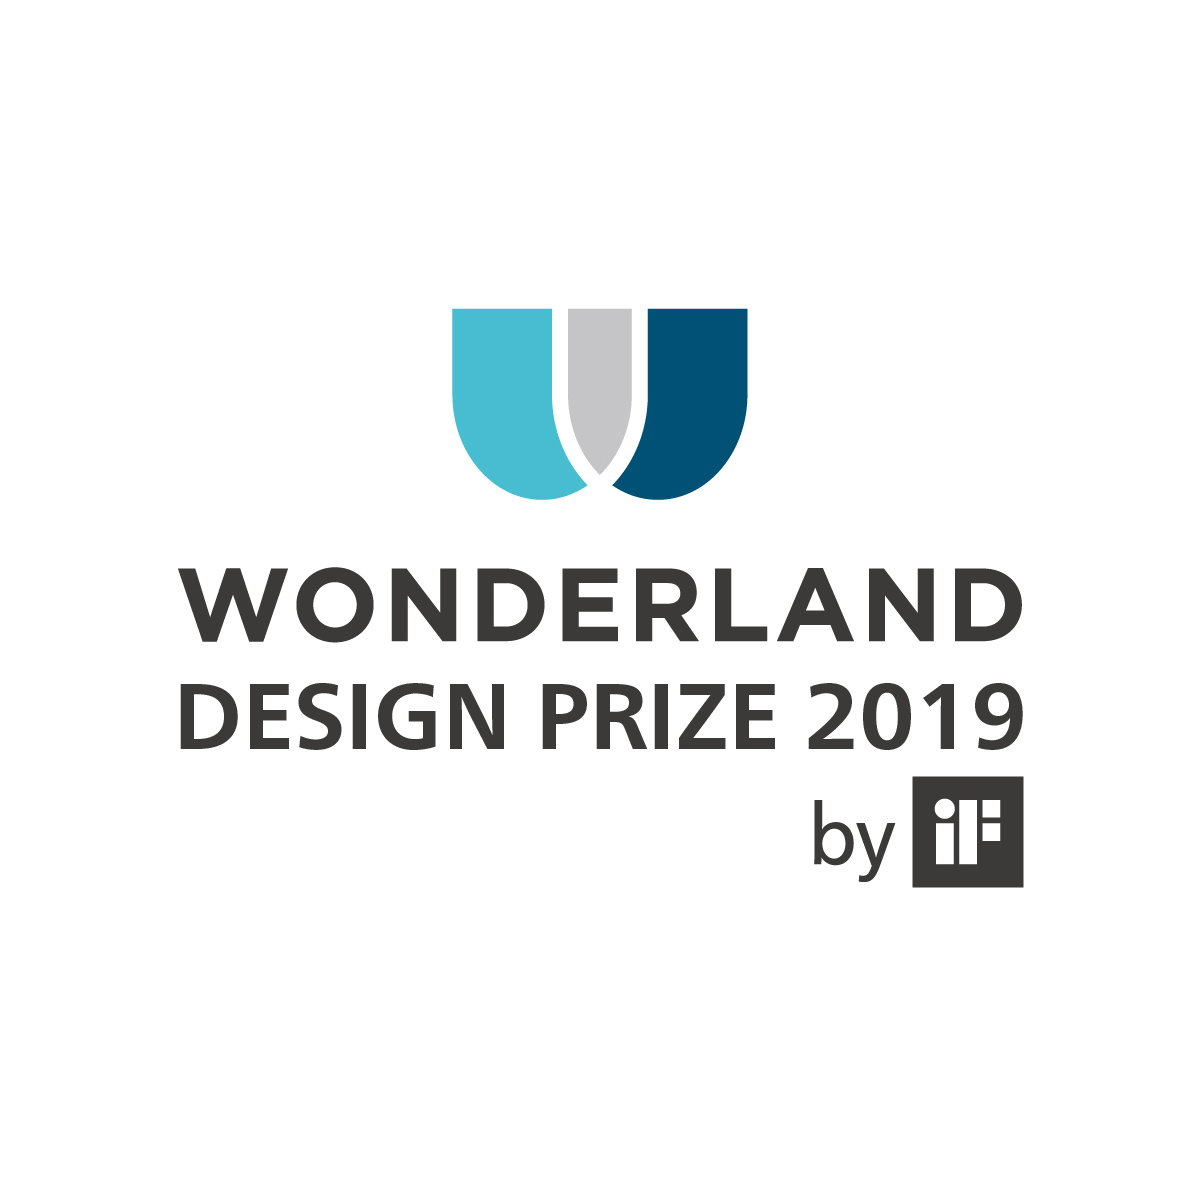 Wonderland Design Prize 2019 by iF